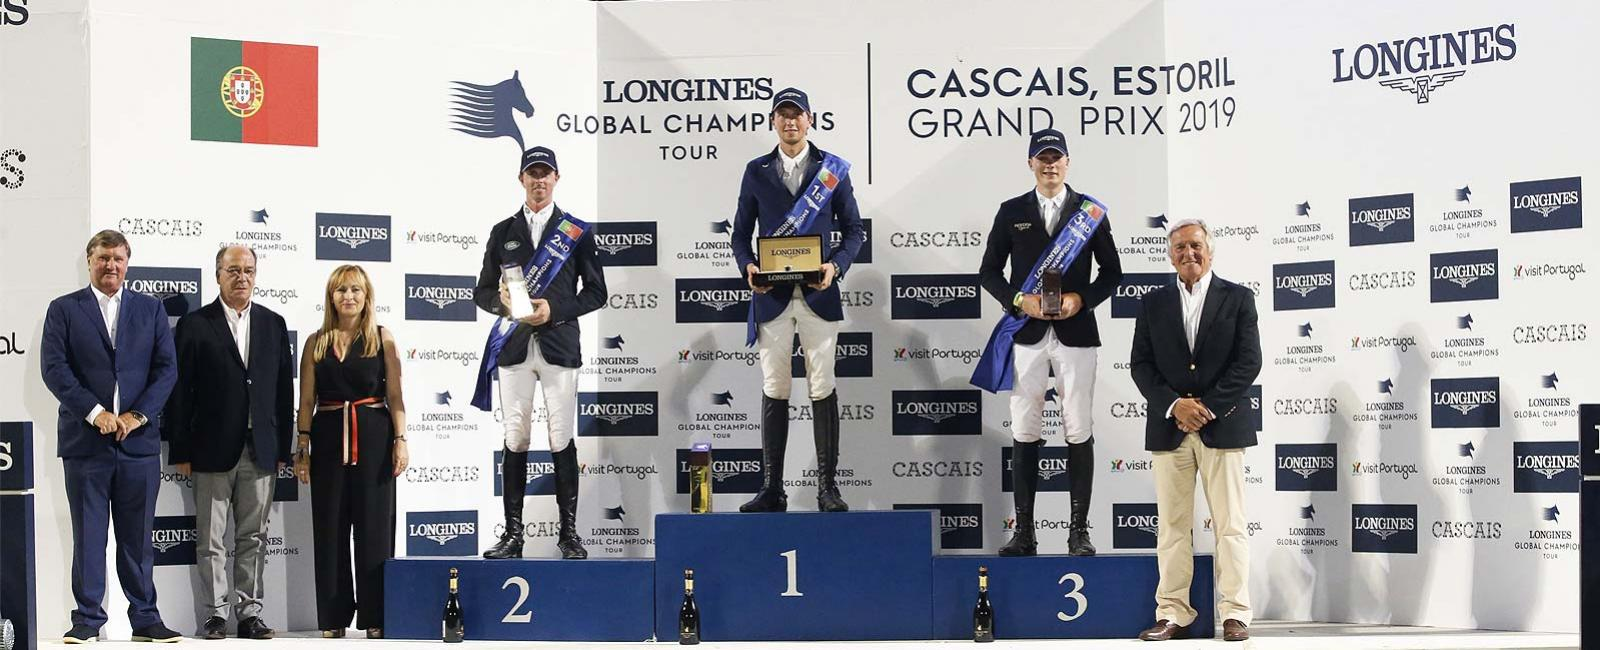 Longines Global Champions Tour of Cascais-Estoril; Jumping; 2019